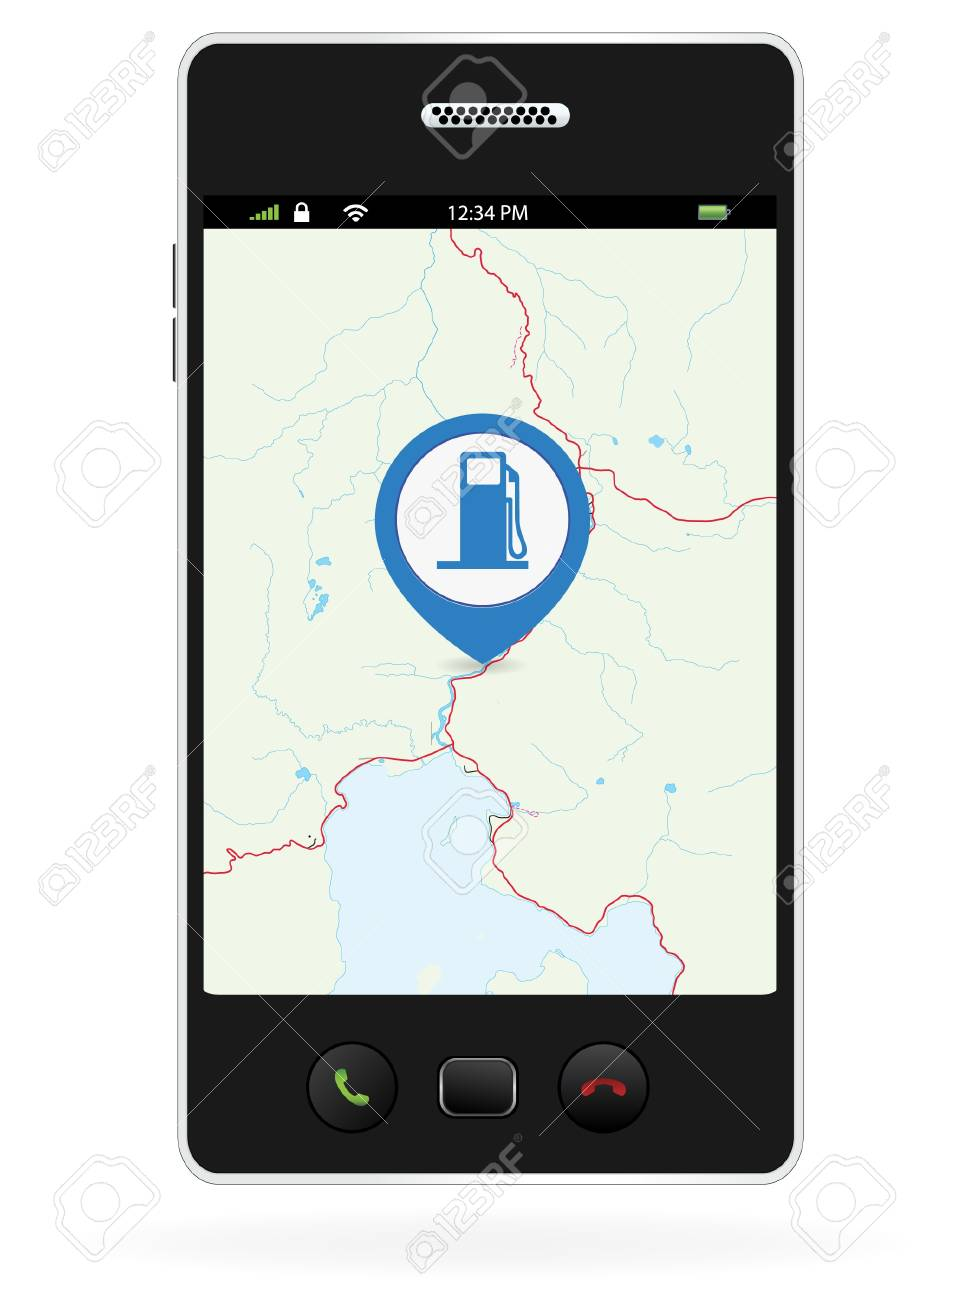 Navigate To The Closest Gas Station >> Gas Station Navigation Pins On Smart Phone